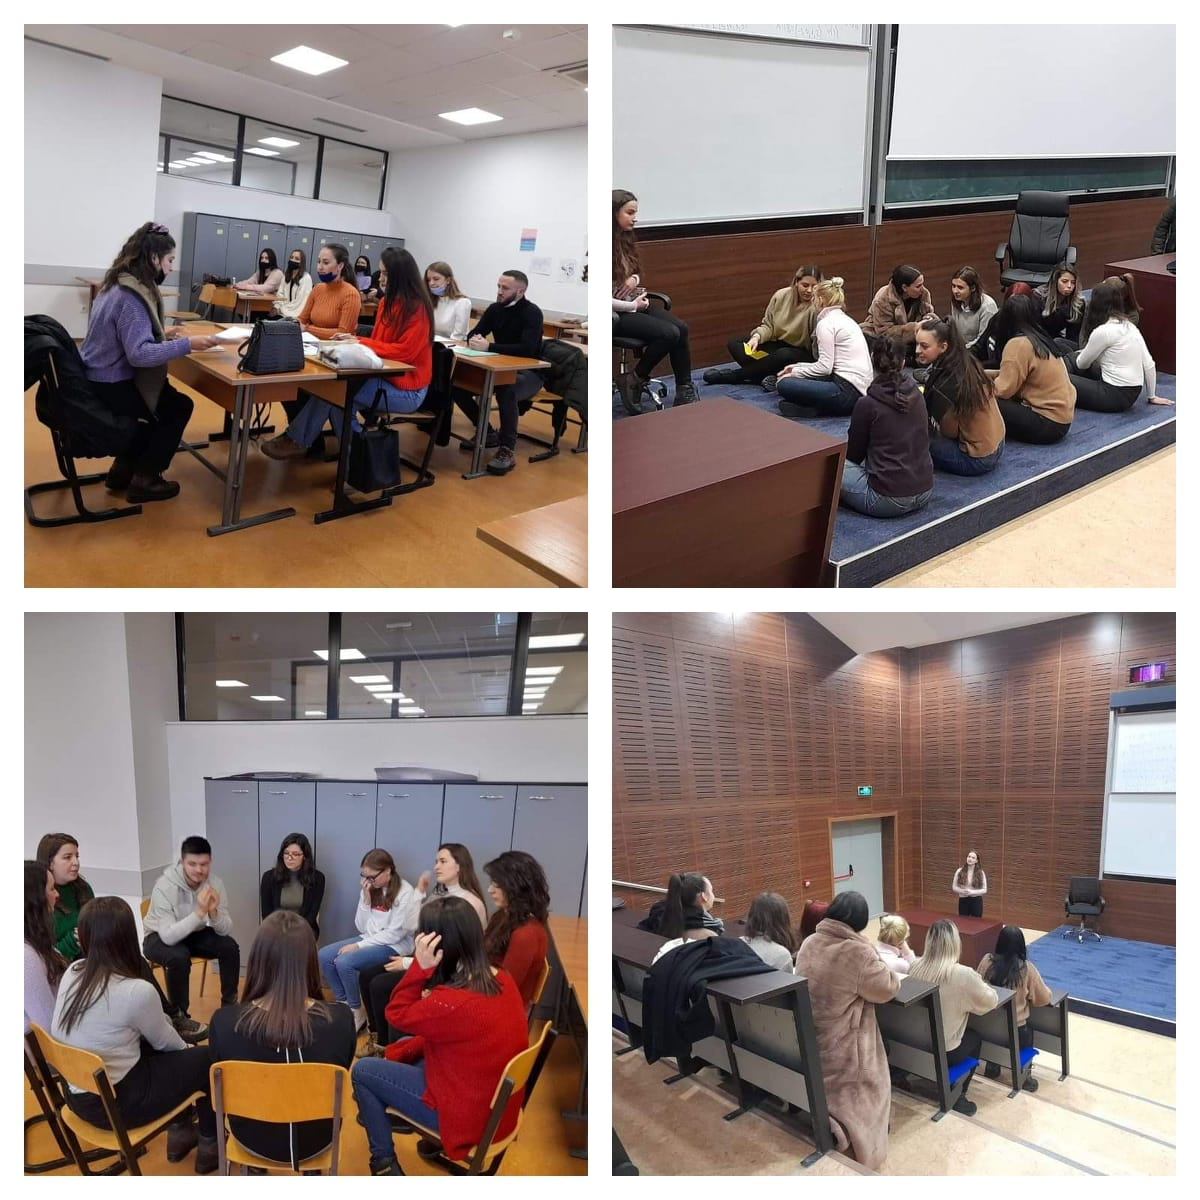 Presentation of the work of the fourth year students of the Primary Program at the Faculty of Education